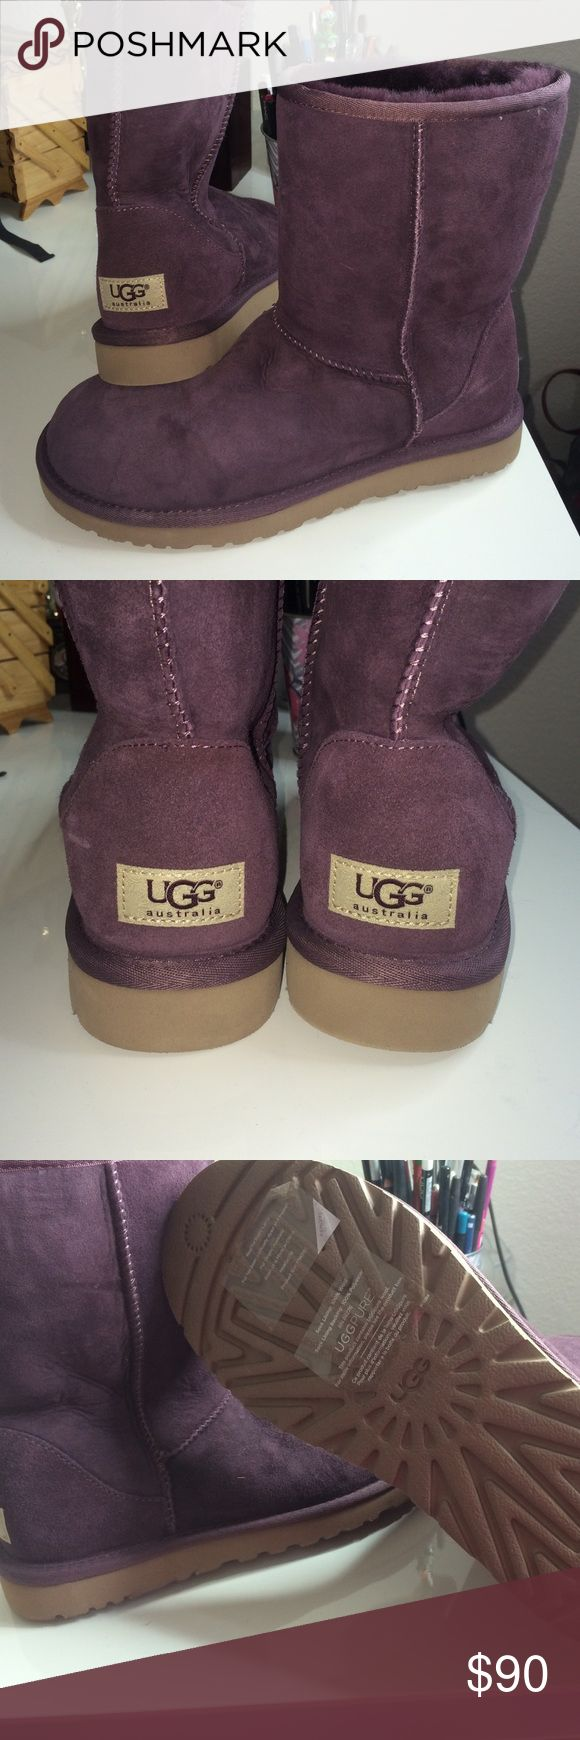 Authentic Ugg boots Never been used authentic Uggs boots beautiful burgundy color perfect for the season. Purchased at Nordstrom don't have the box anymore. Price is firm UGG Shoes Winter & Rain Boots